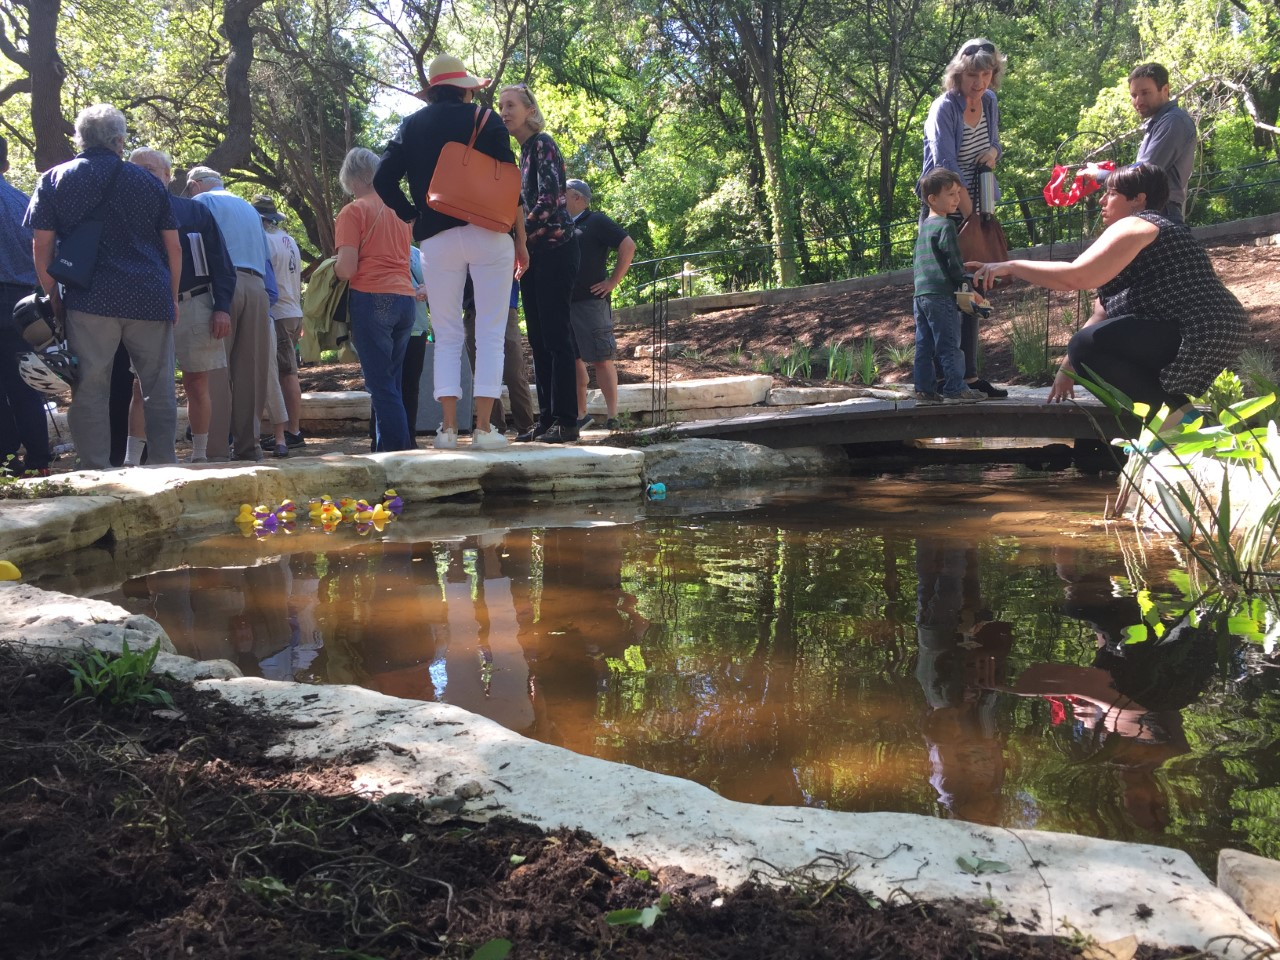 Zilker Botanical Garden to offer free entry eight days a year starting in 2020